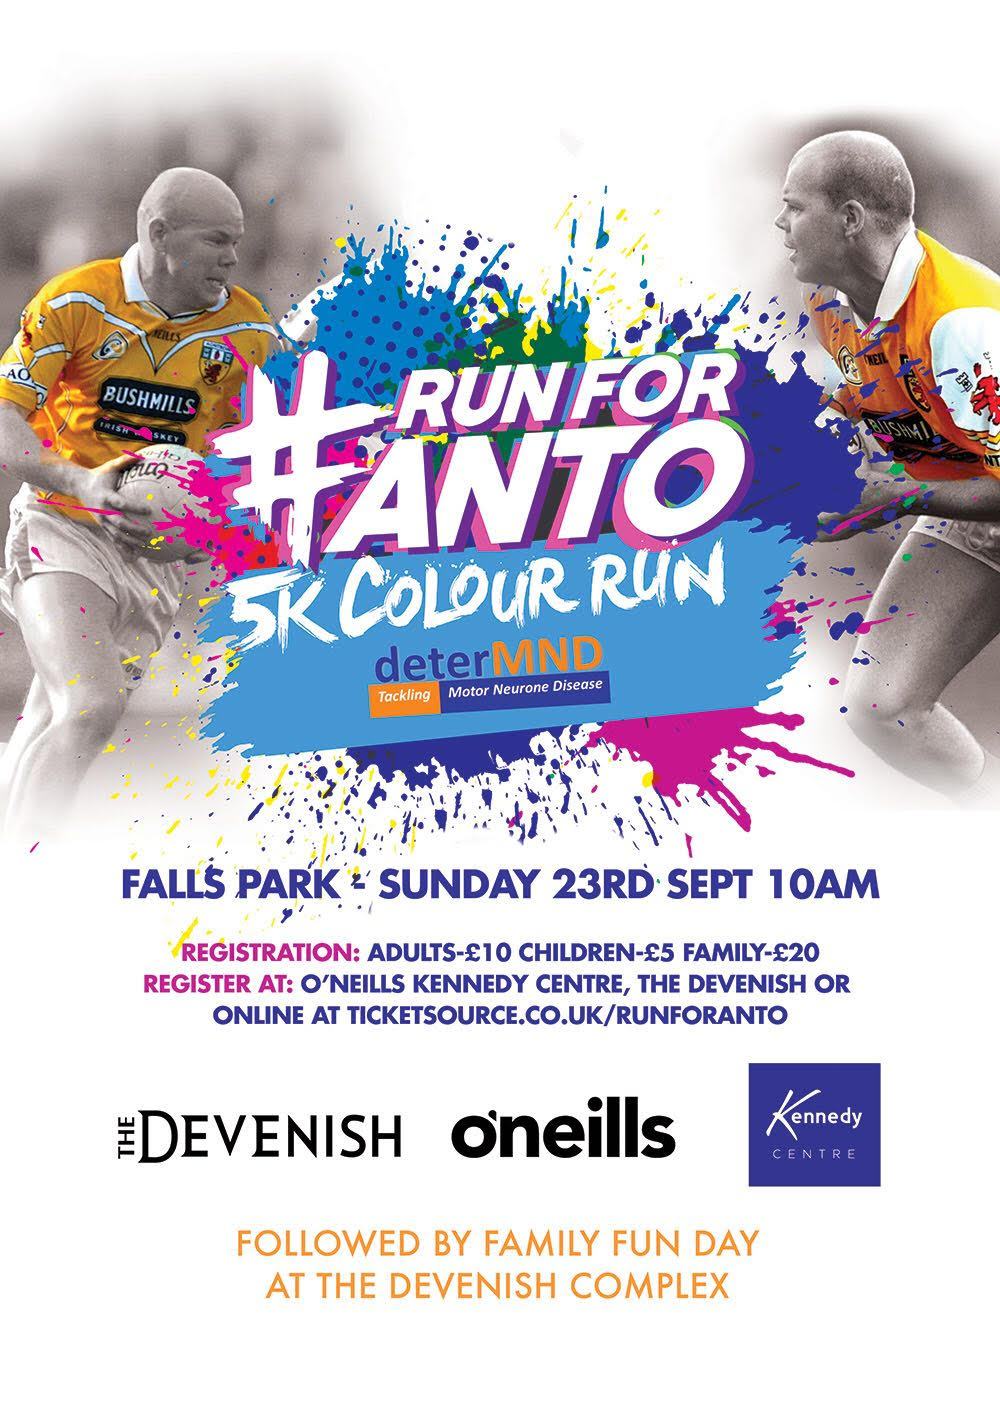 Register For The 'Run For Anto' On Sunday 23rd September!